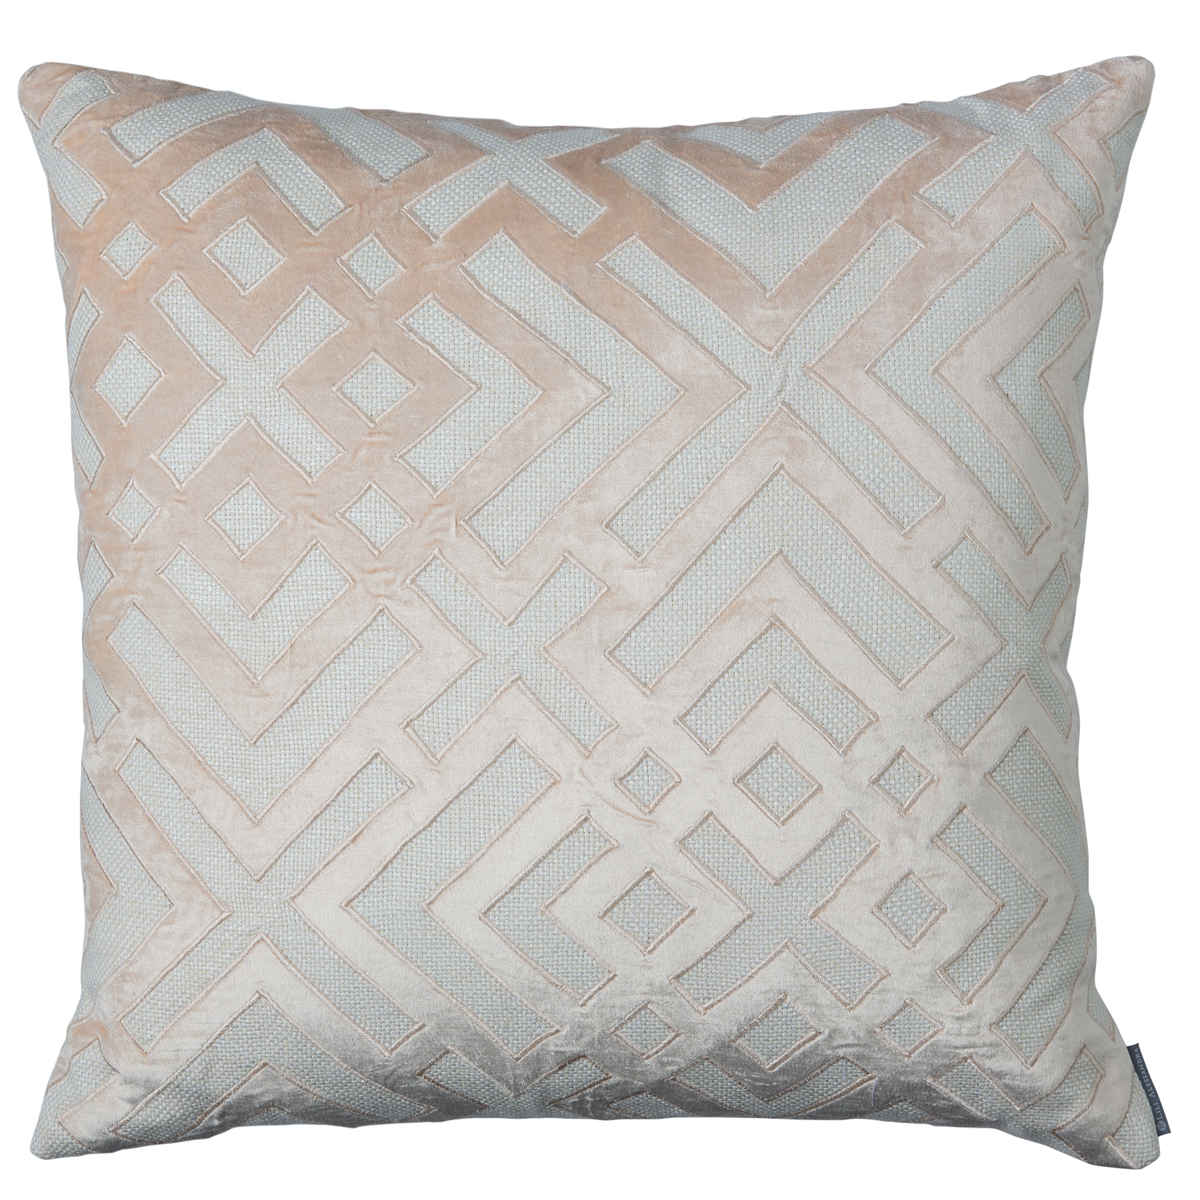 decorative pillow christian sq throw guy valencia velvet ivory blush coco pillows lili alessandra v karl l basketweave